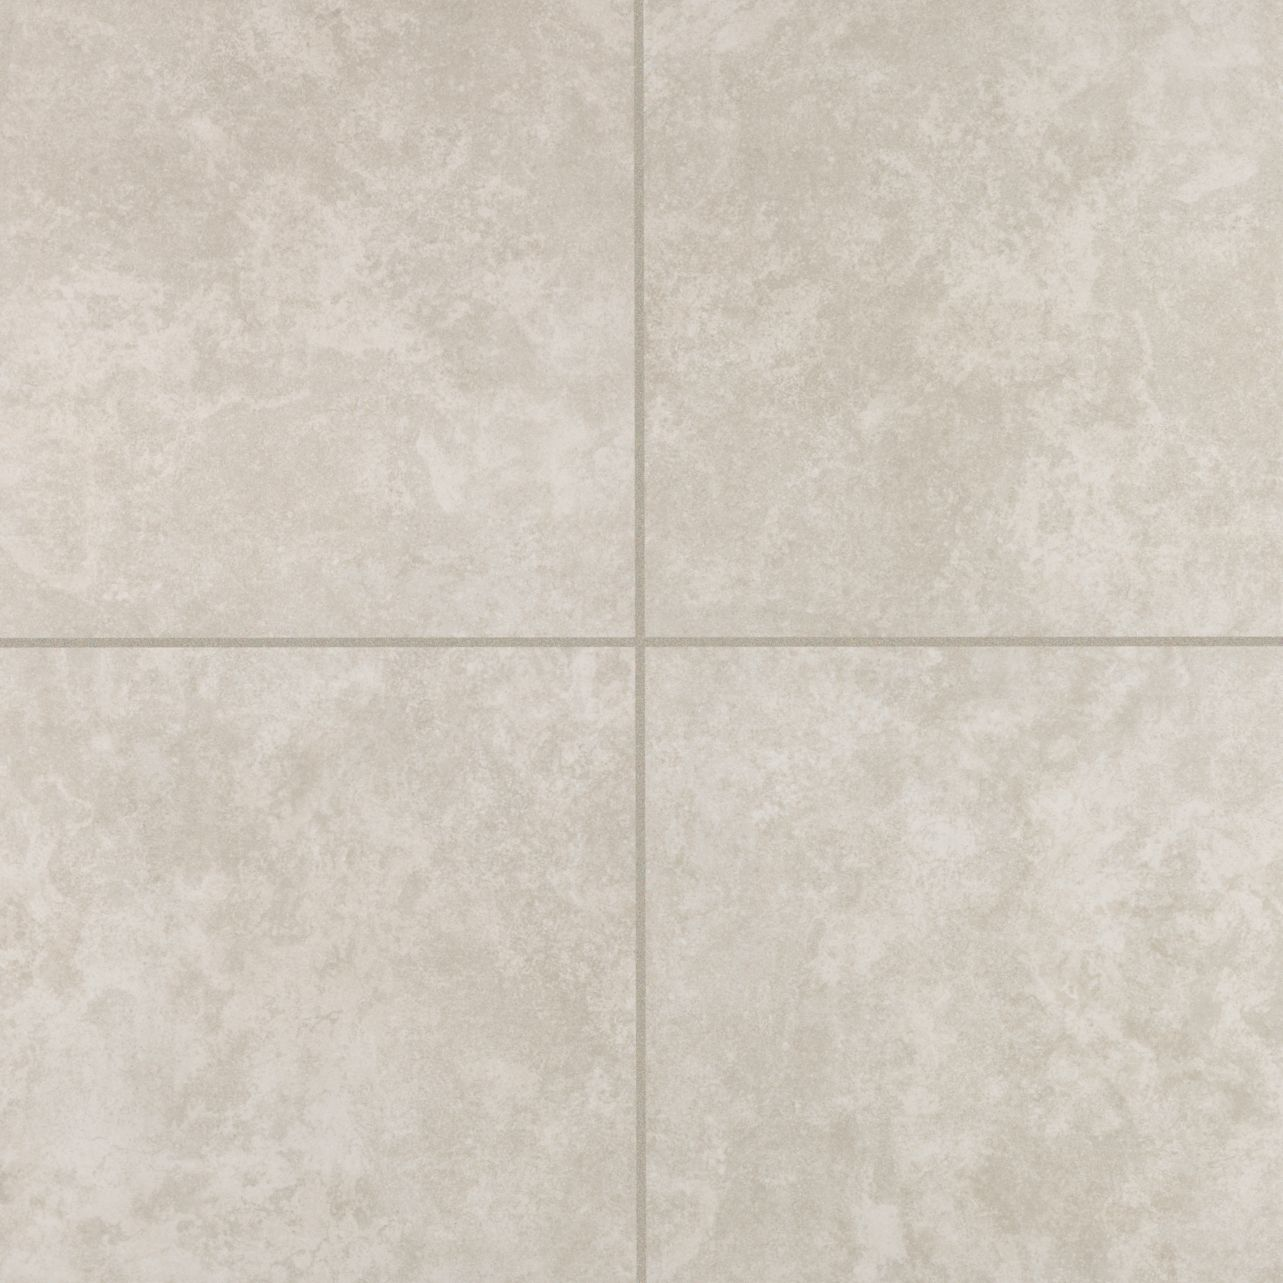 CeramicPorcelainTile Astello Wall Cream  main image